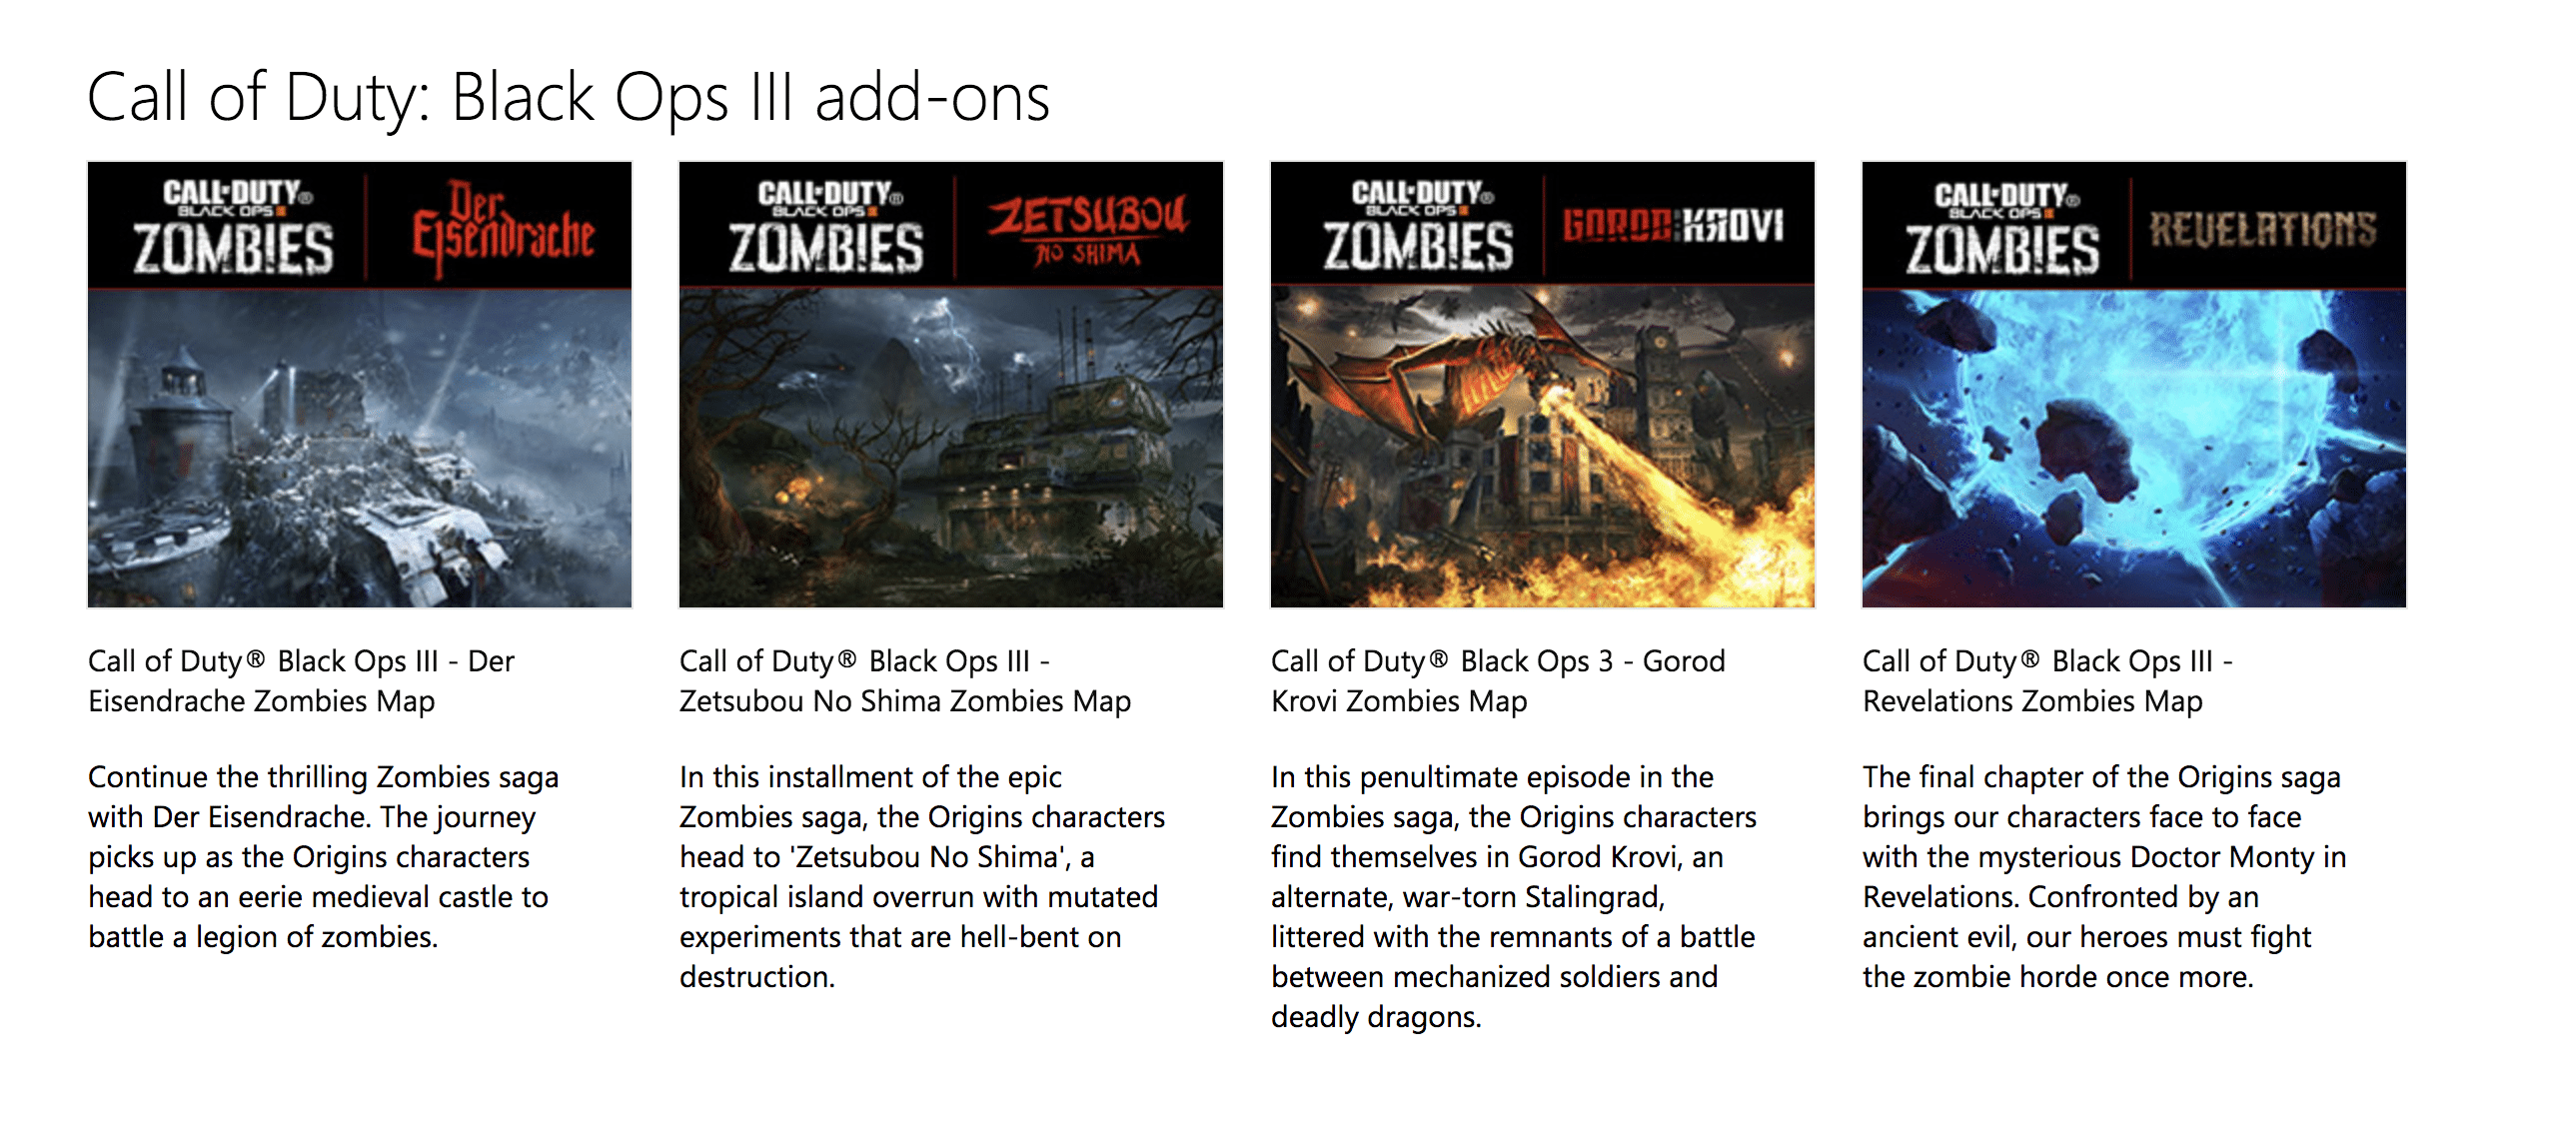 Call of Duty: Black Ops 3 Zombies DLC maps now available for